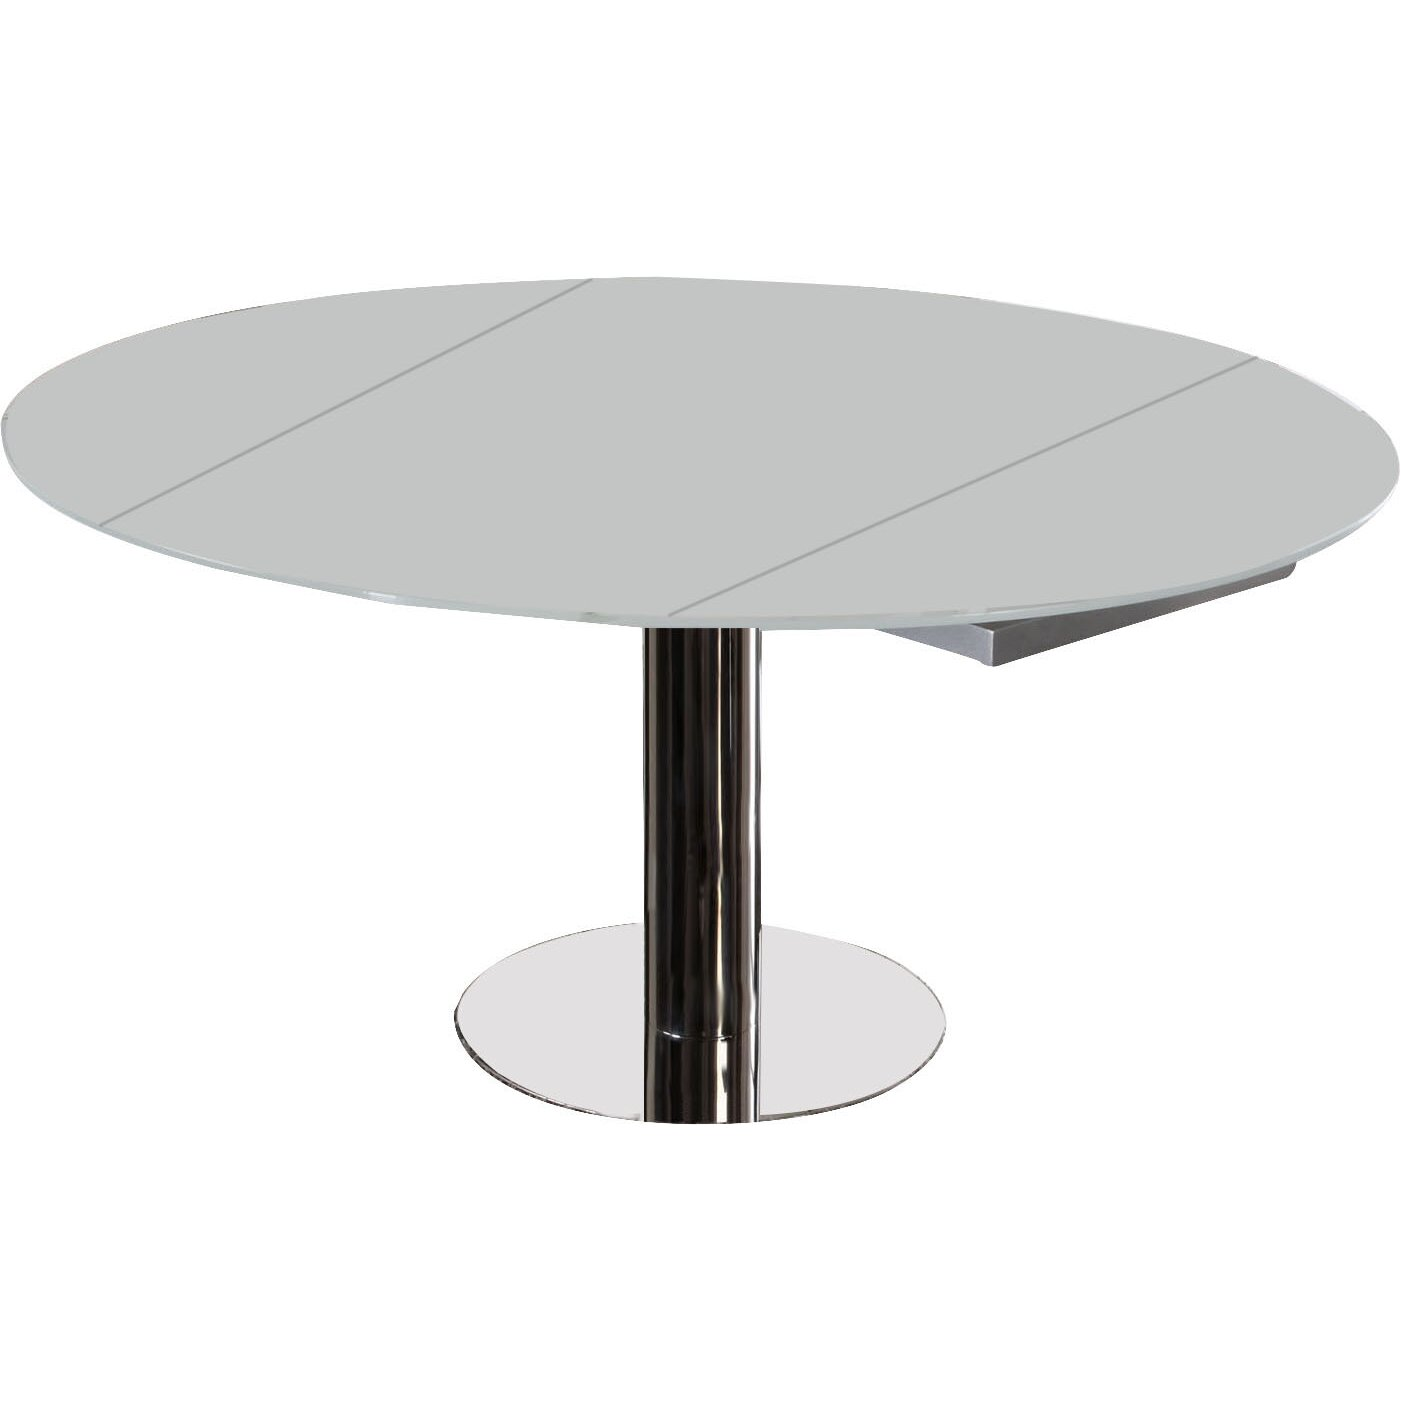 Chintaly Tami Extendable Dining Table & Reviews | Wayfair